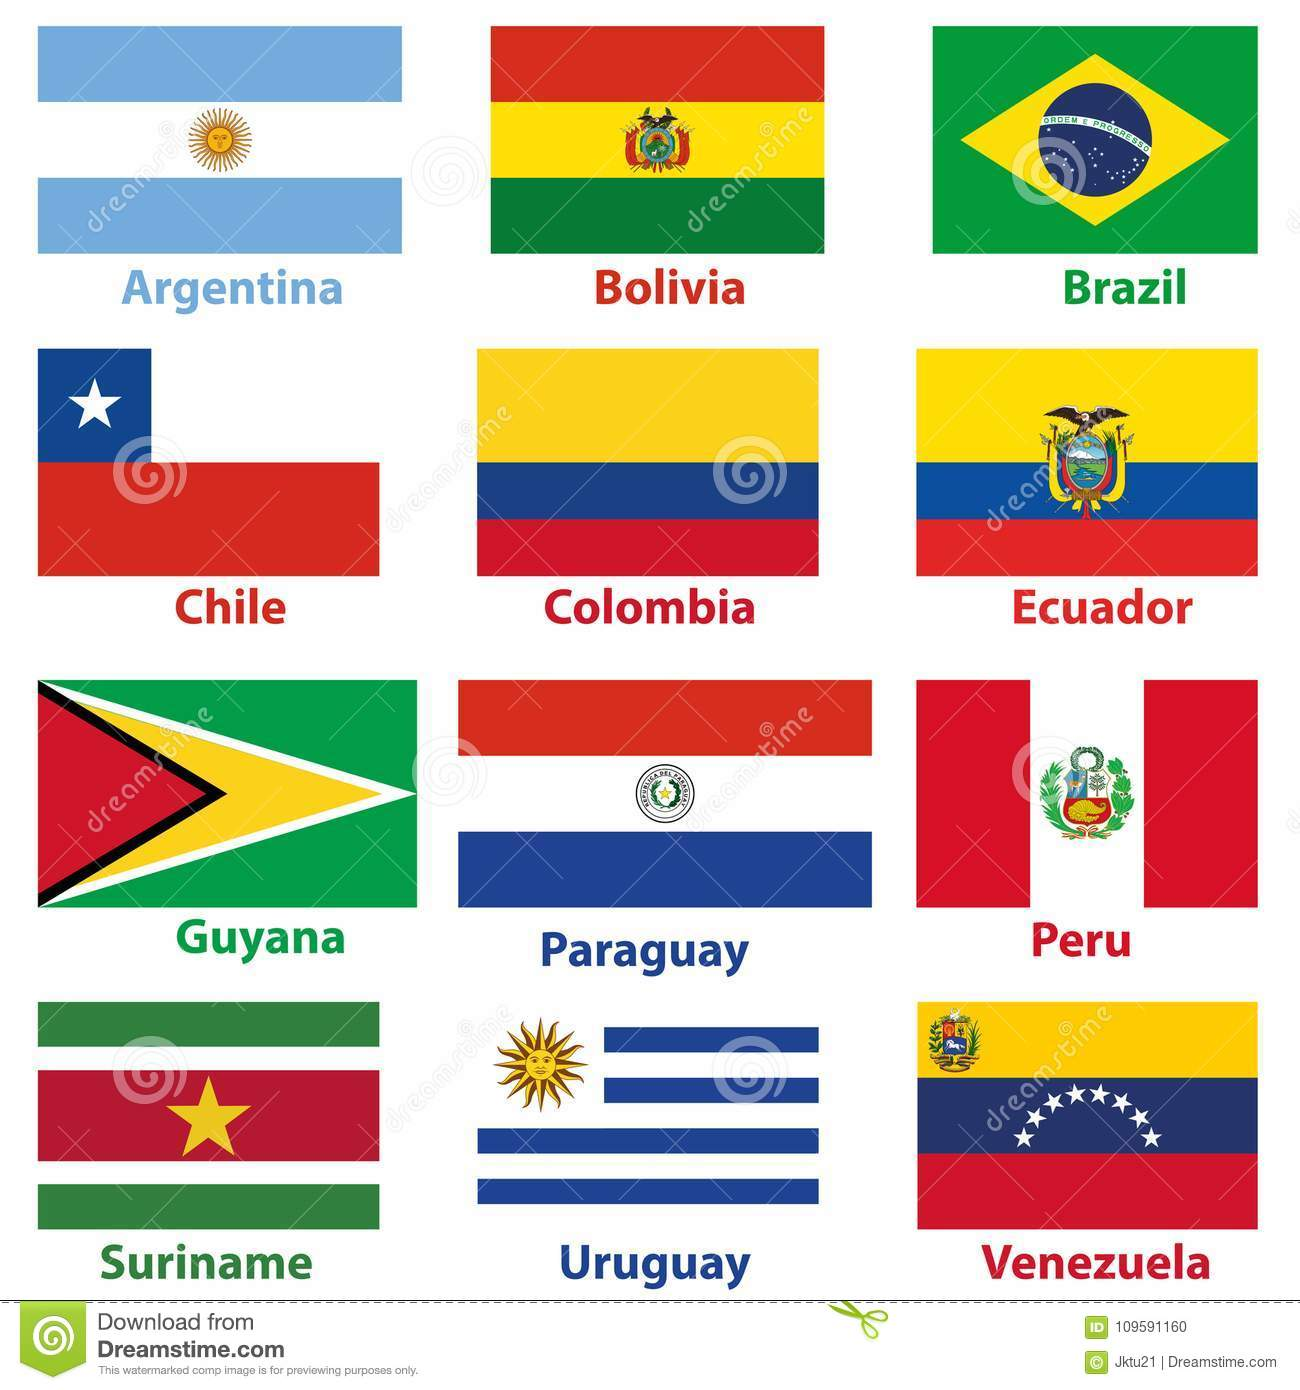 Vector Maps And Flags Of South American Countries Stock Vector ...